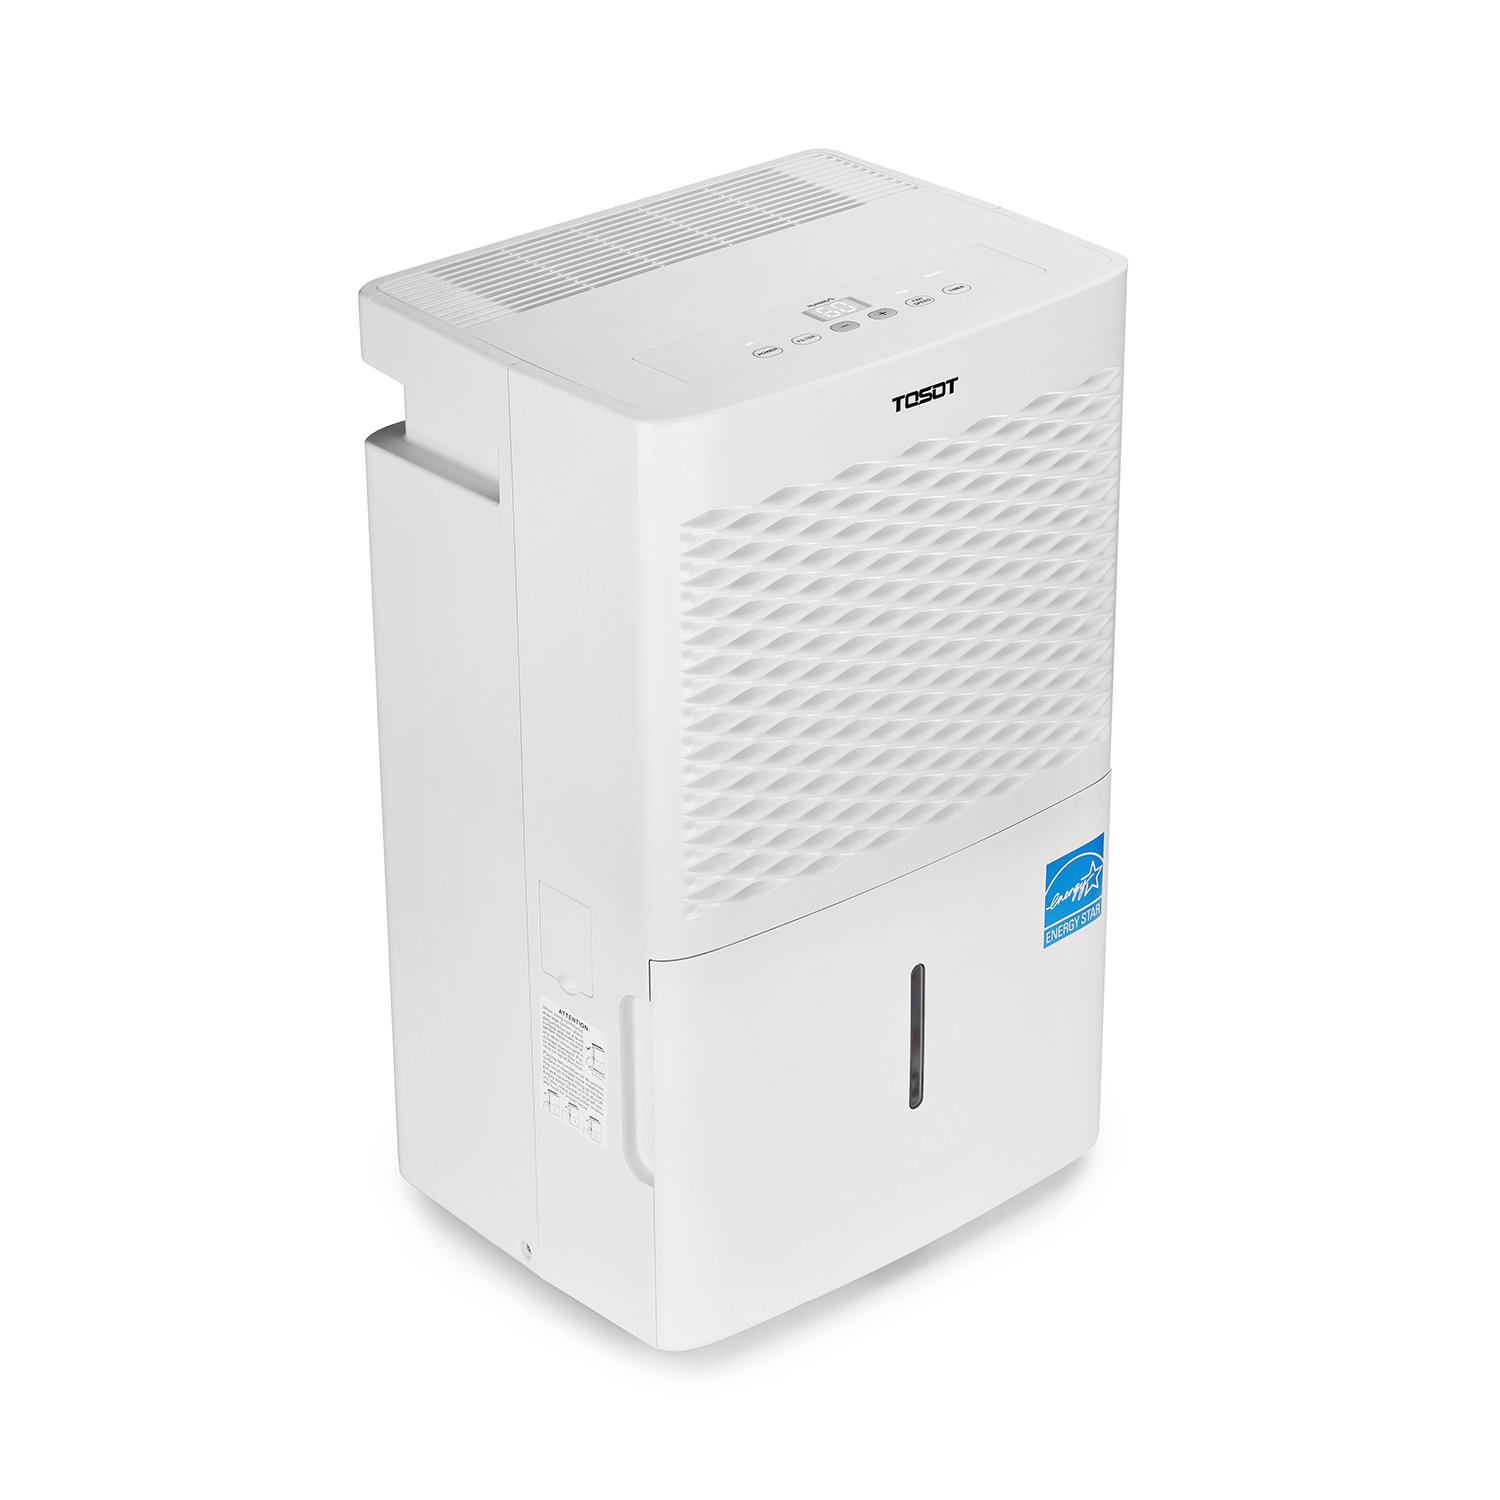 Tosot 50 Pint Dehumidifier Best for Basement